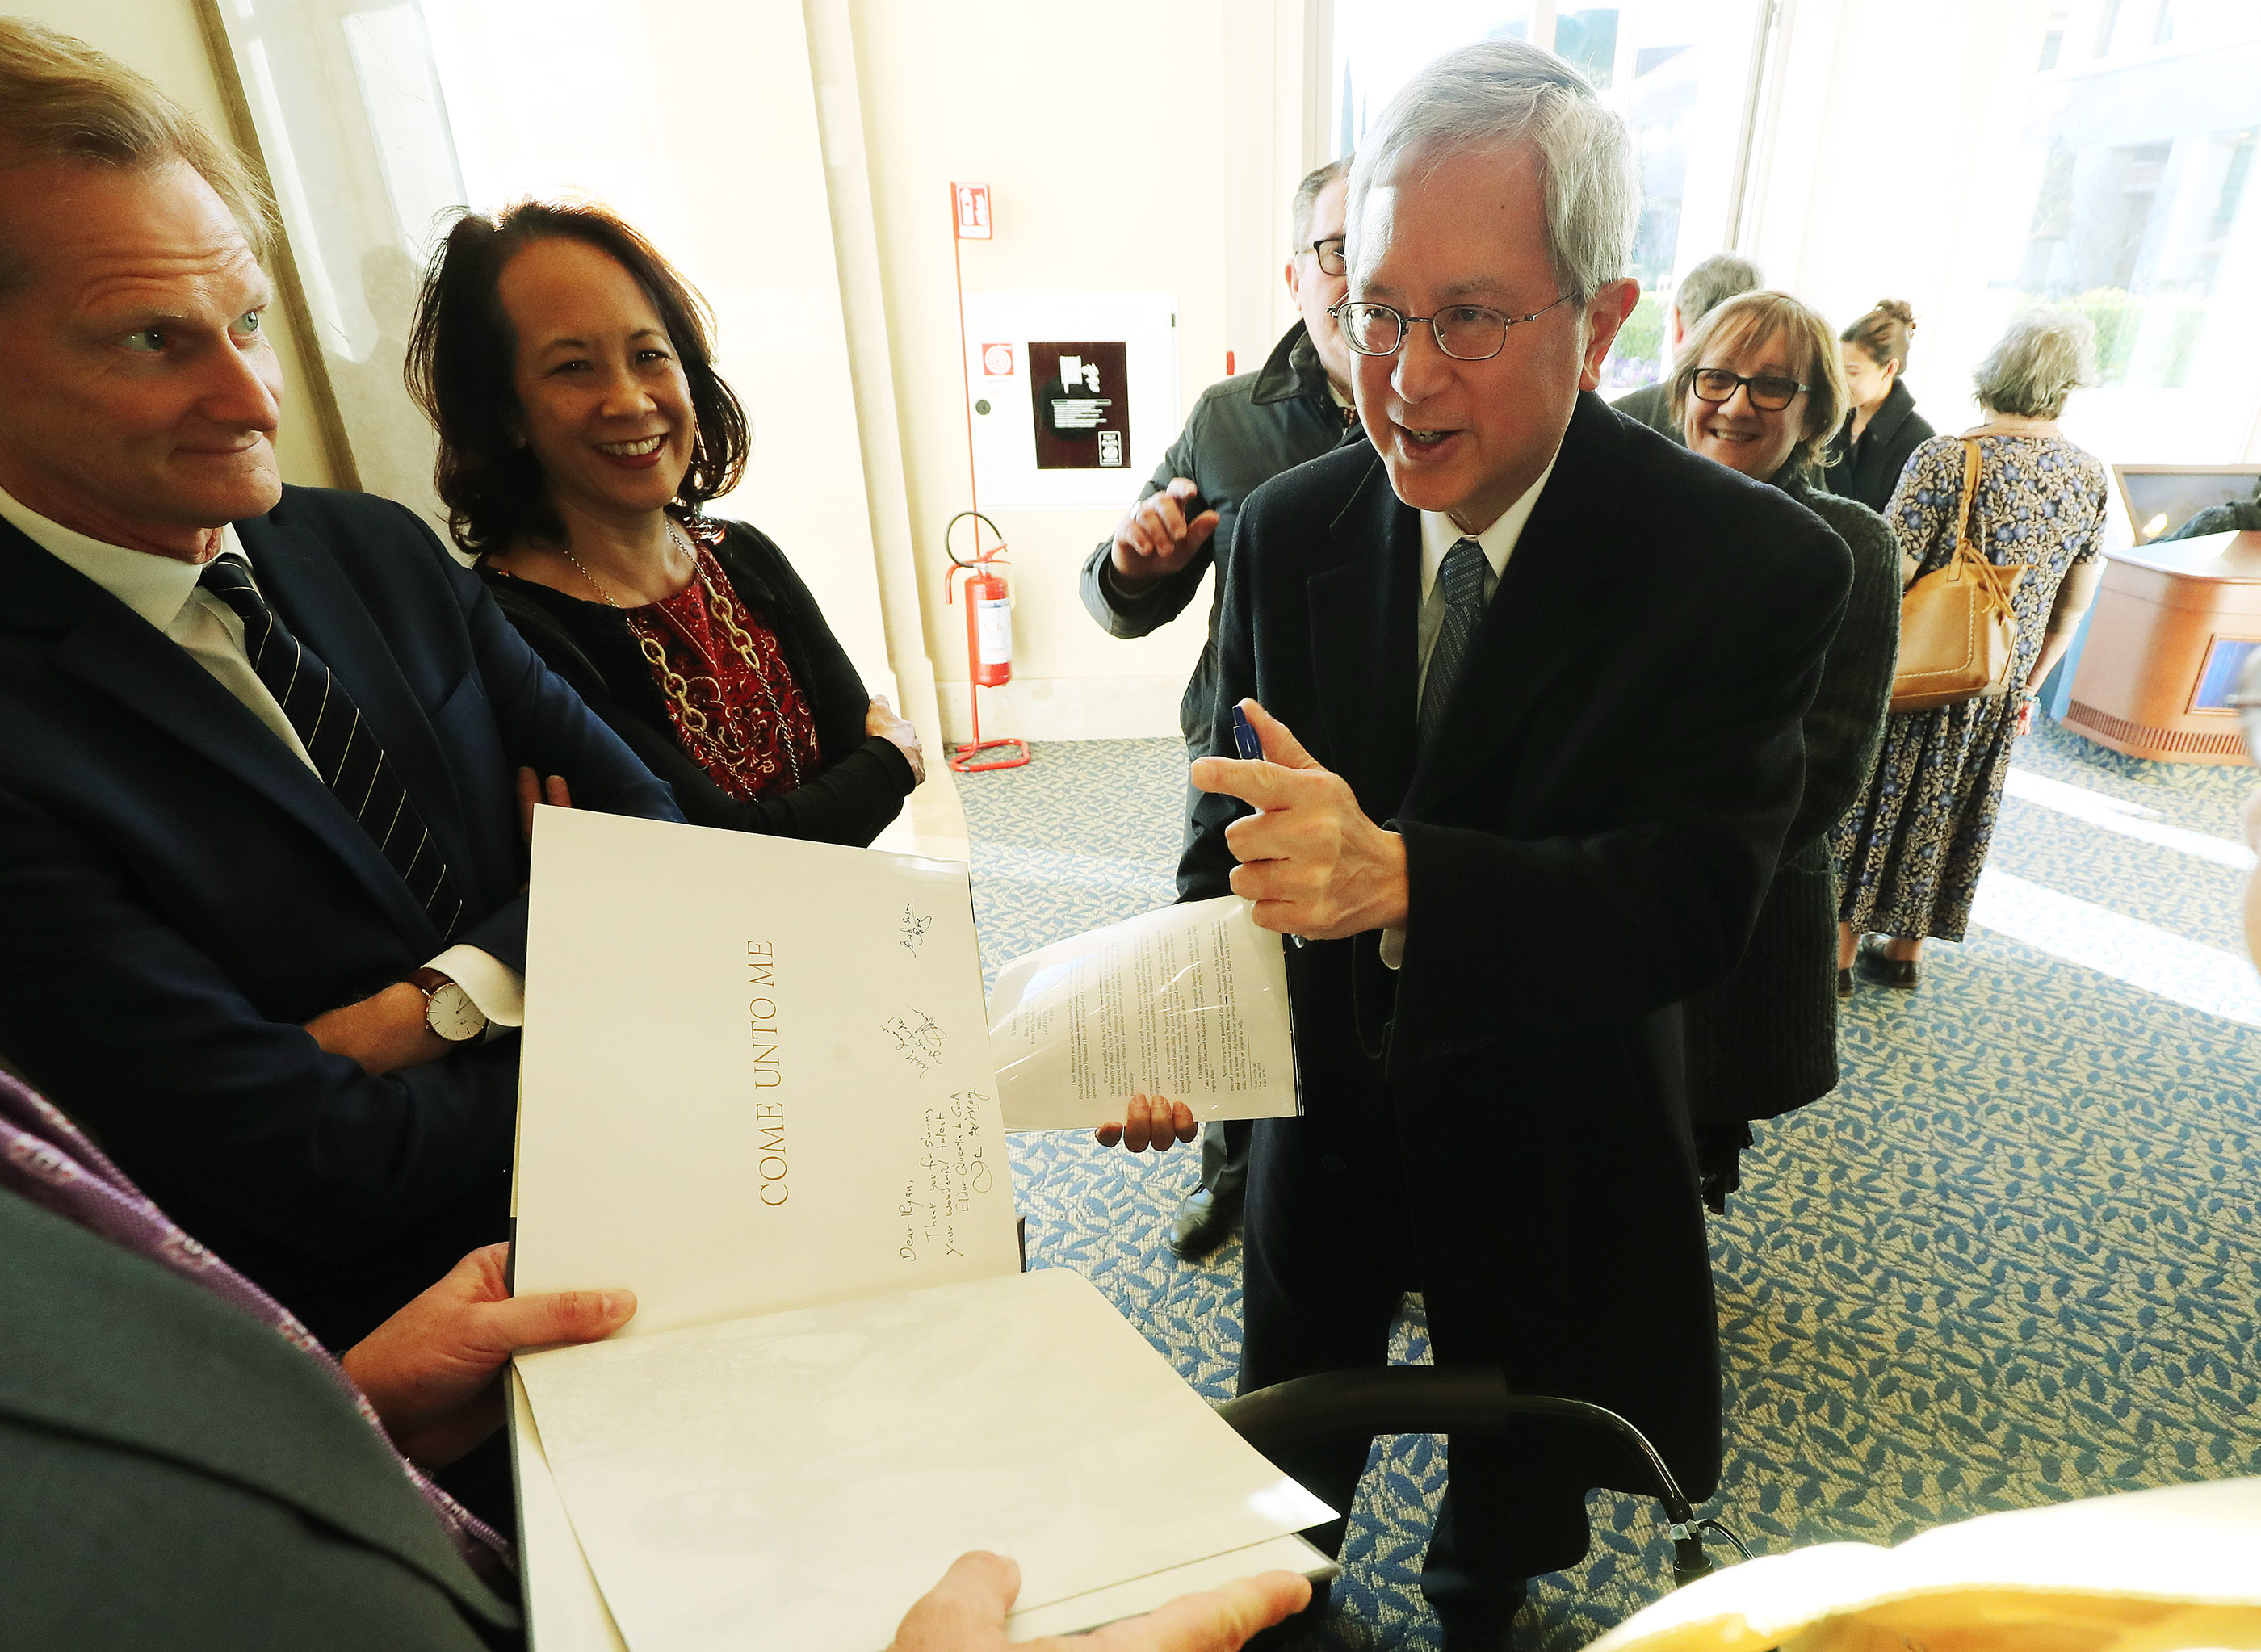 Elder Gerrit W. Gong of the Quorum of the Twelve Apostles of The Church of Jesus Christ of Latter-day Saints, signs a book in Rome on Tuesday, March 12, 2019.